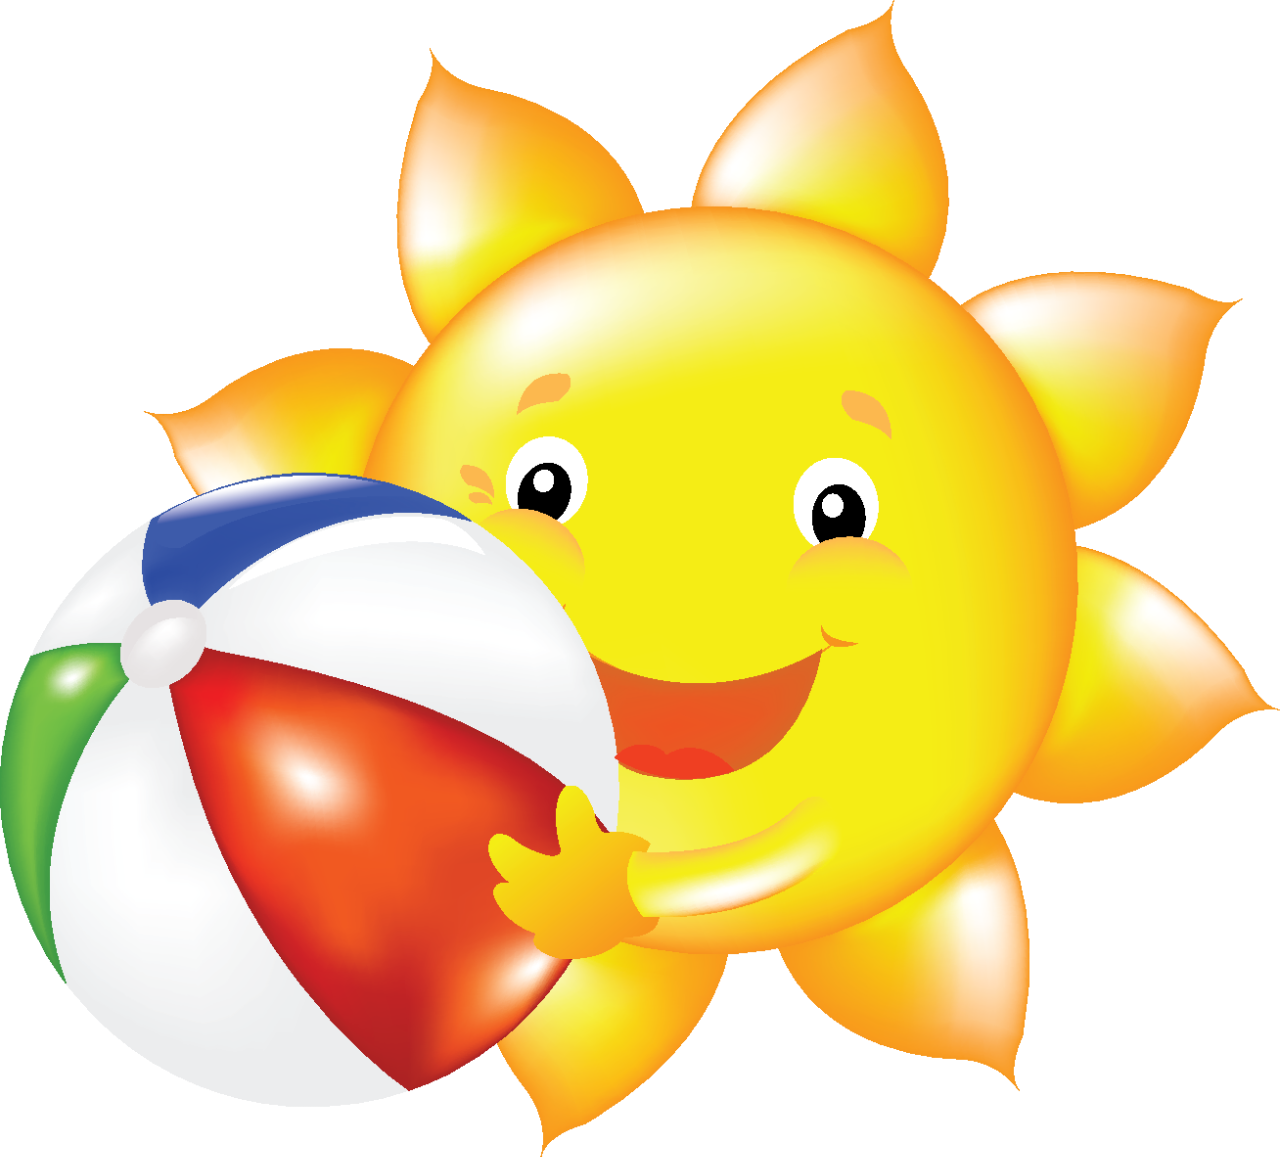 Clip art everyday for. Summer sun png banner transparent stock